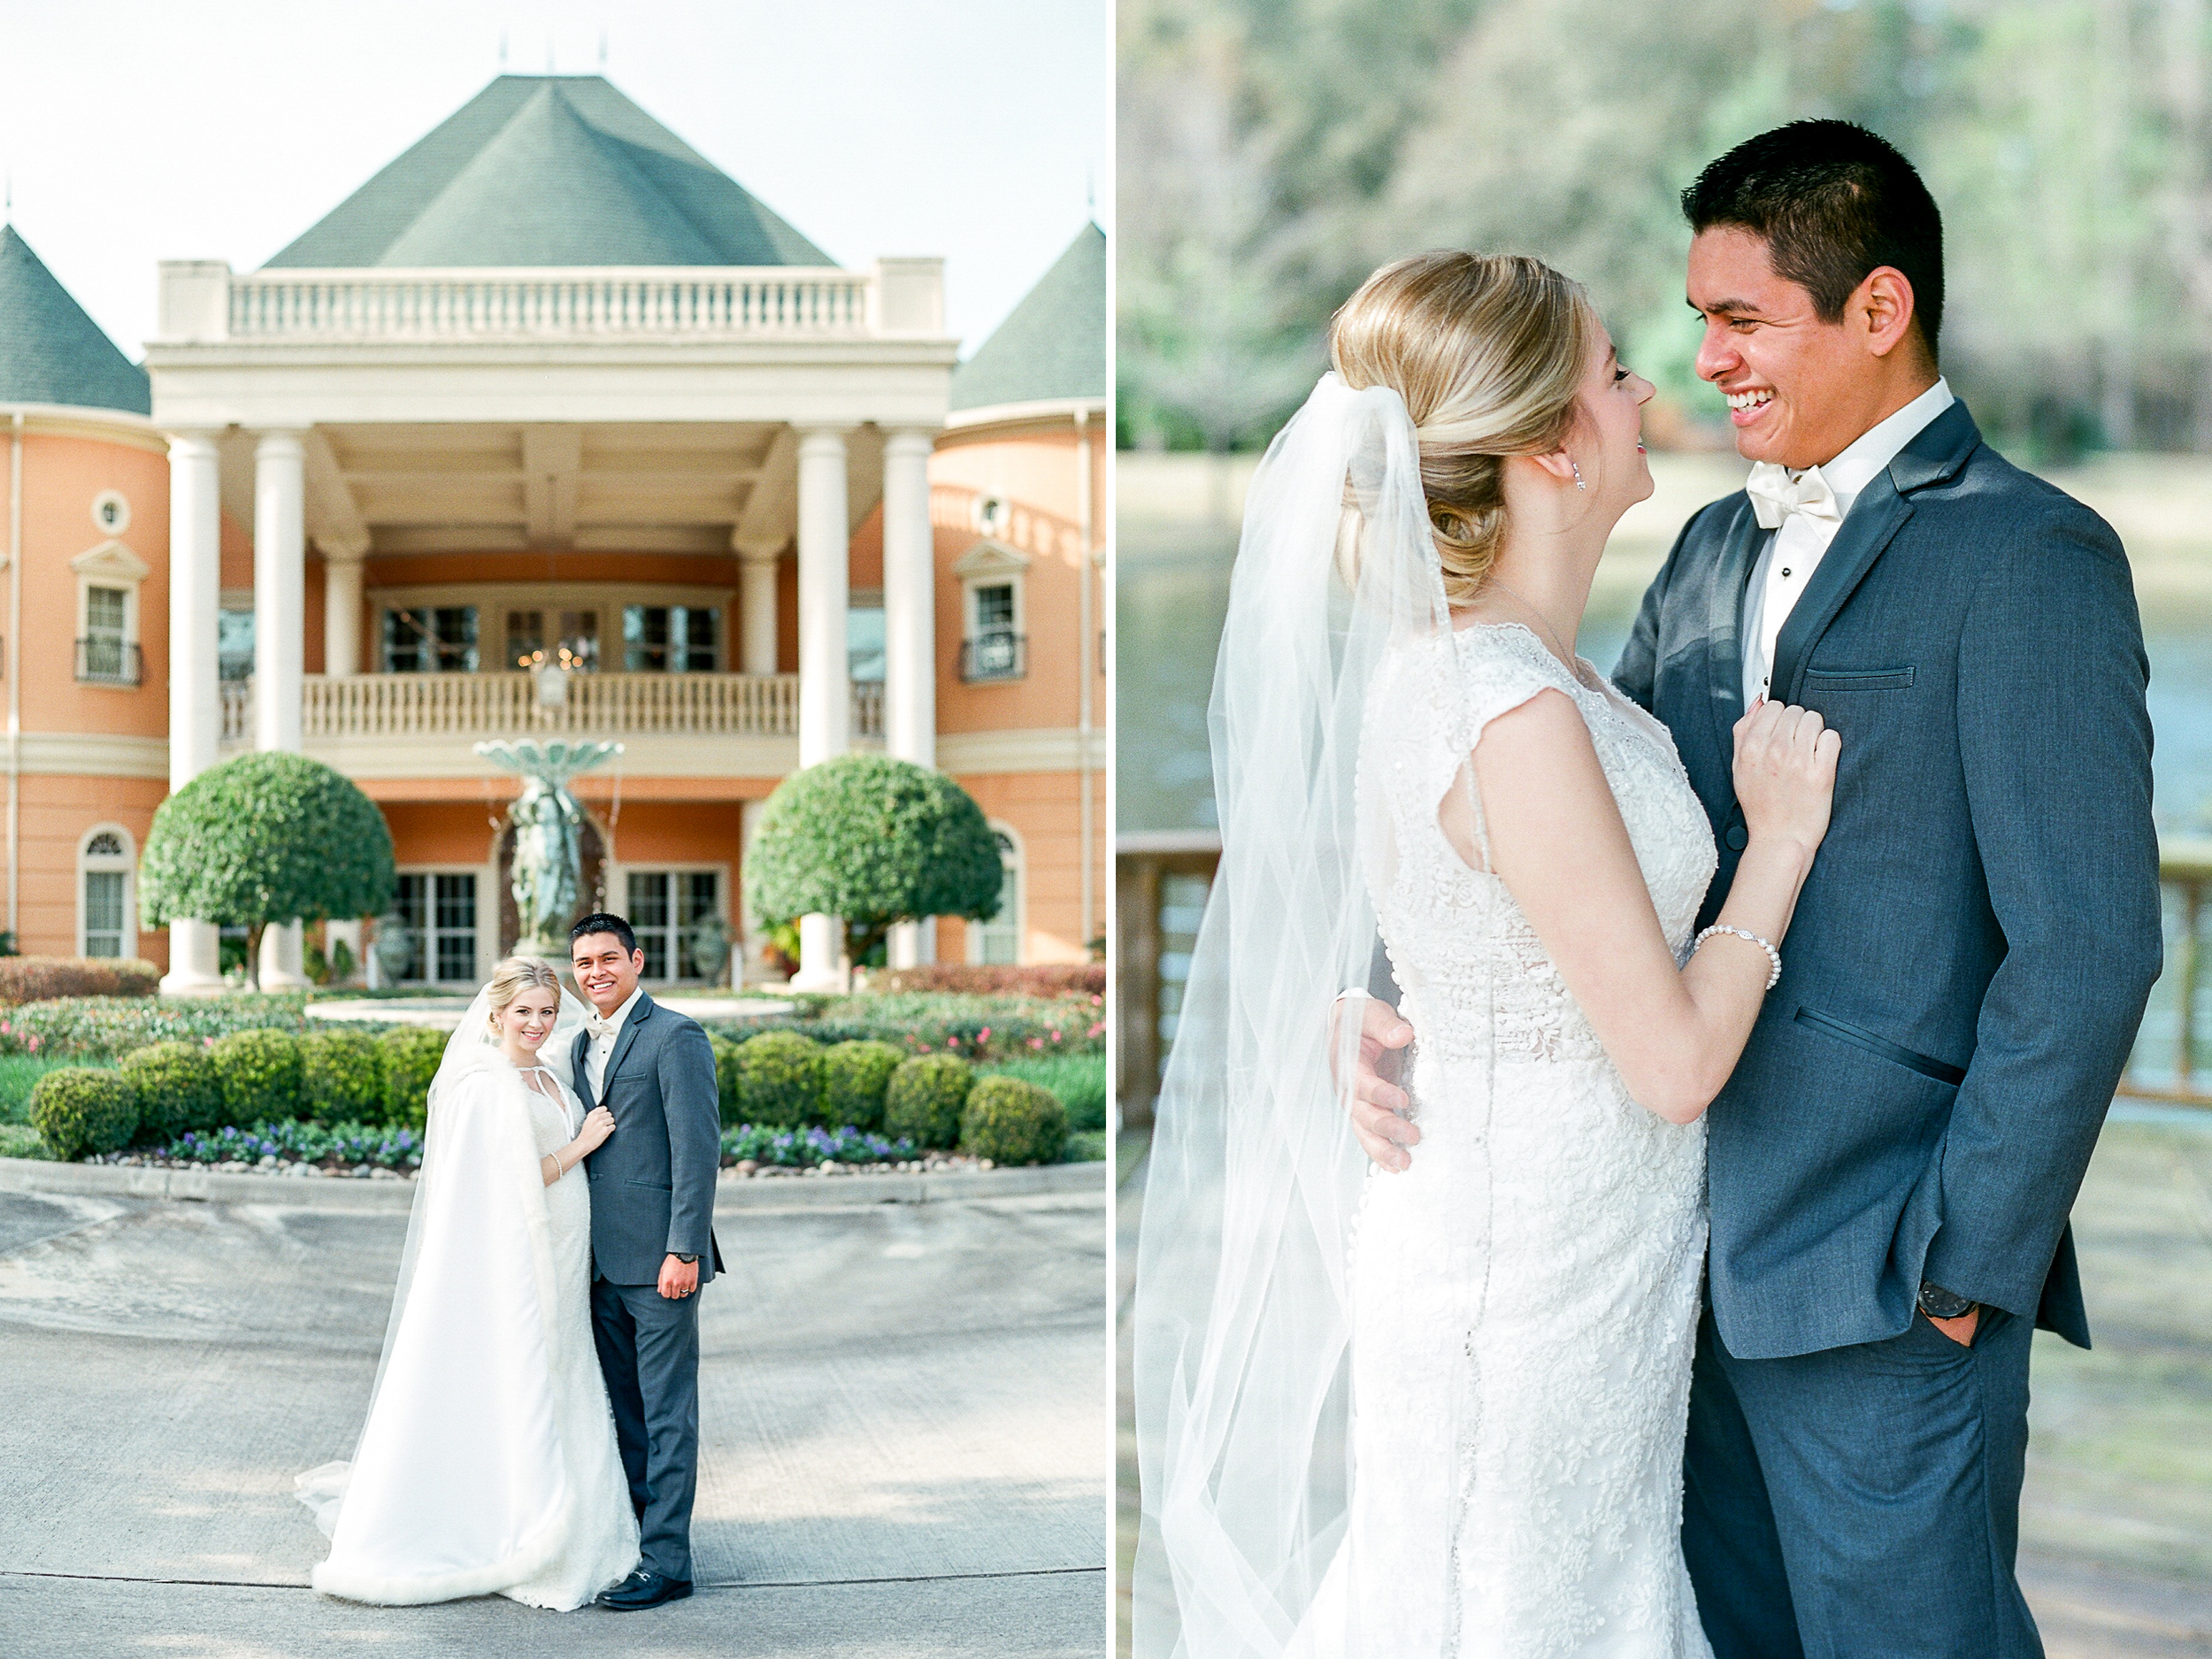 dana fernandez photography houston film wedding destination photographer 1.jpg